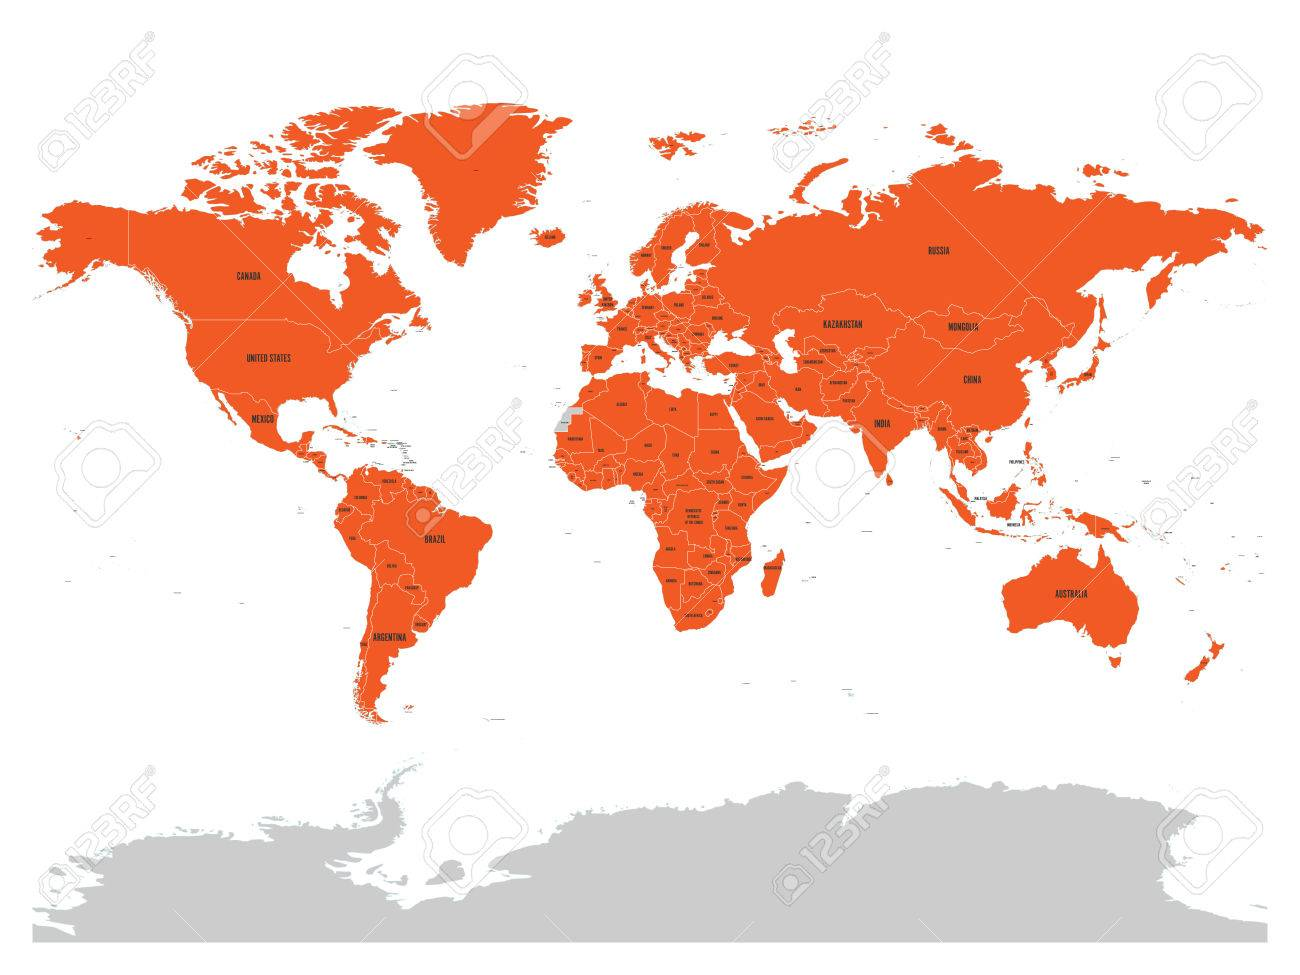 Map of united nation with orange highlighted member states un map of united nation with orange highlighted member states un is an intergovernmental organization of publicscrutiny Image collections